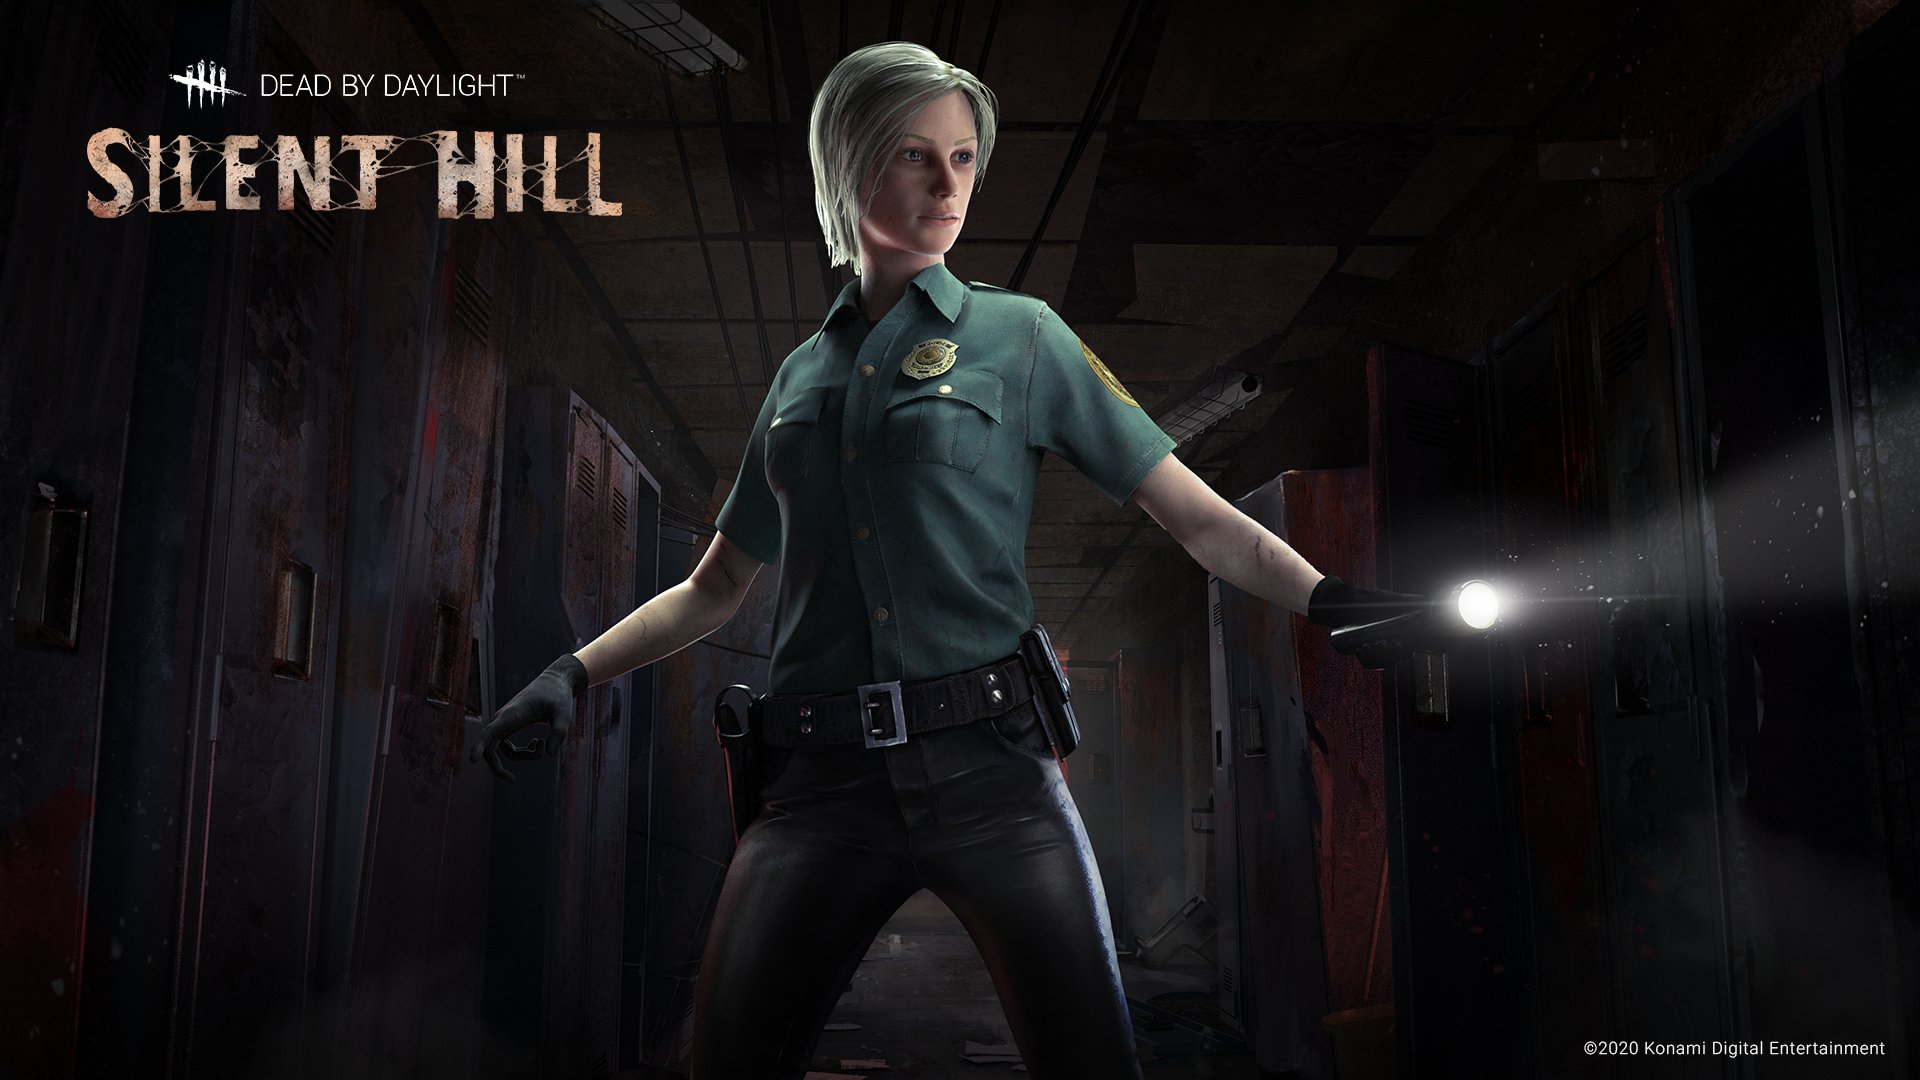 'Silent Hill' Character Cybil Bennett Joins 'Dead by Daylight' With New Skin Available Now